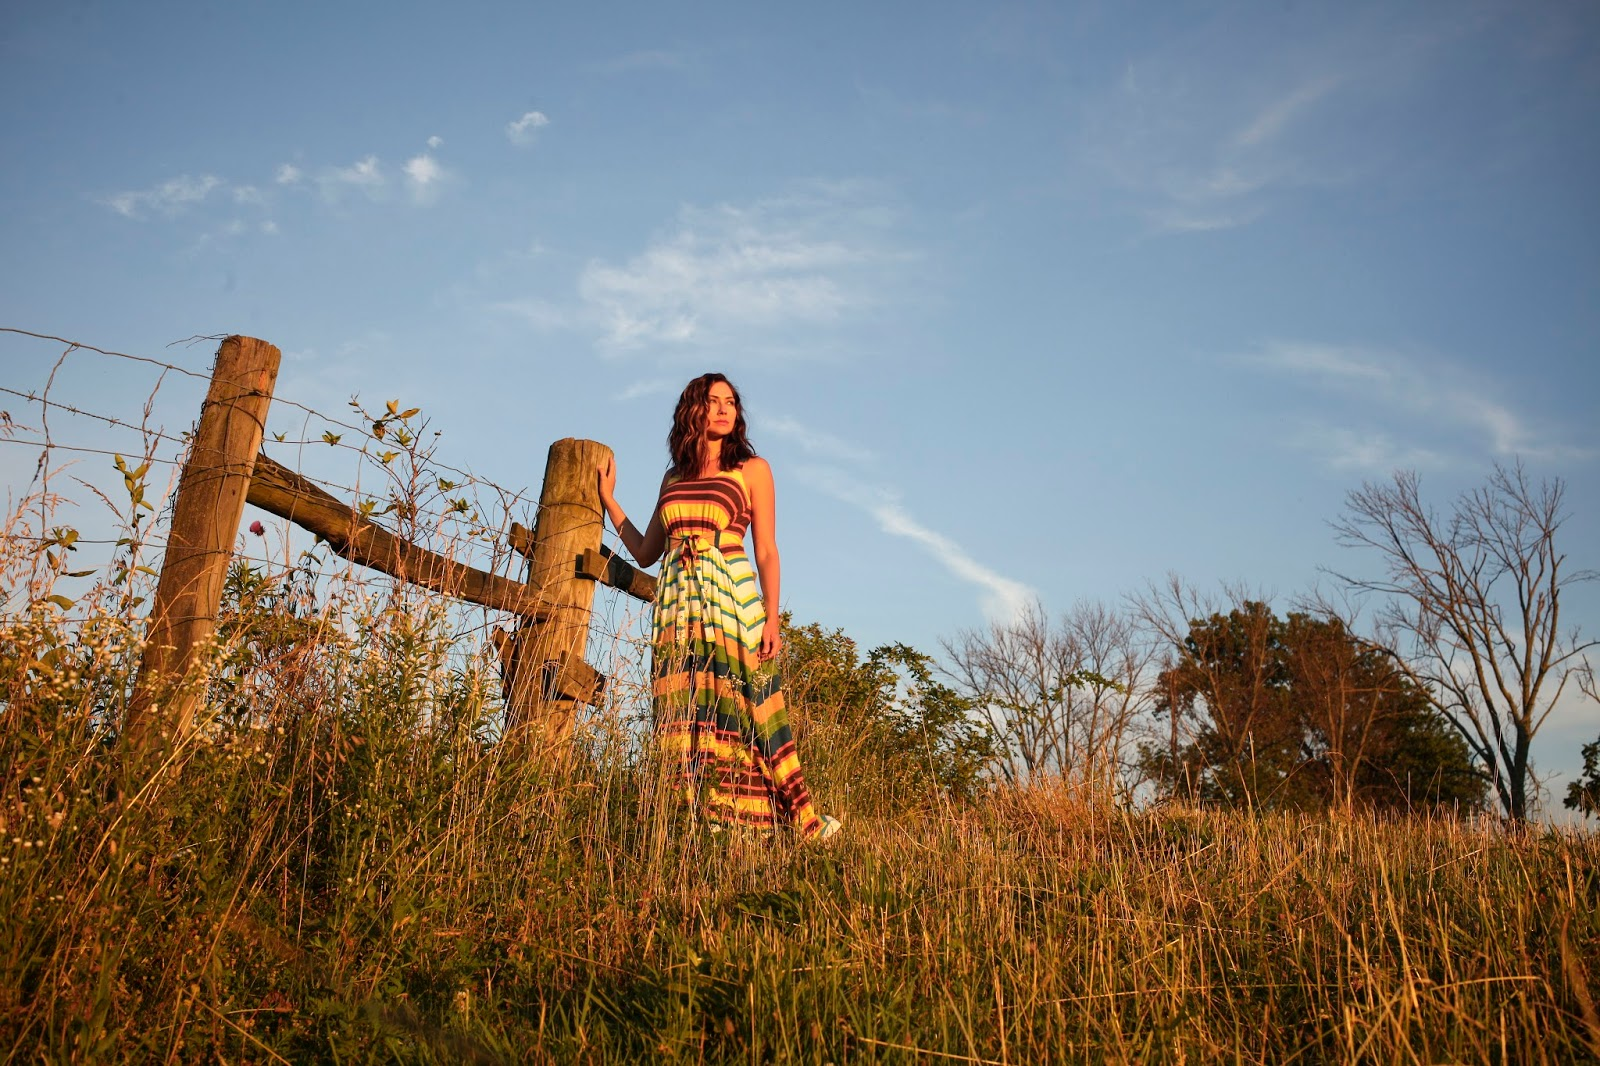 Amy West watches the sun set in this striped maxi dress on a farm in Kentucky